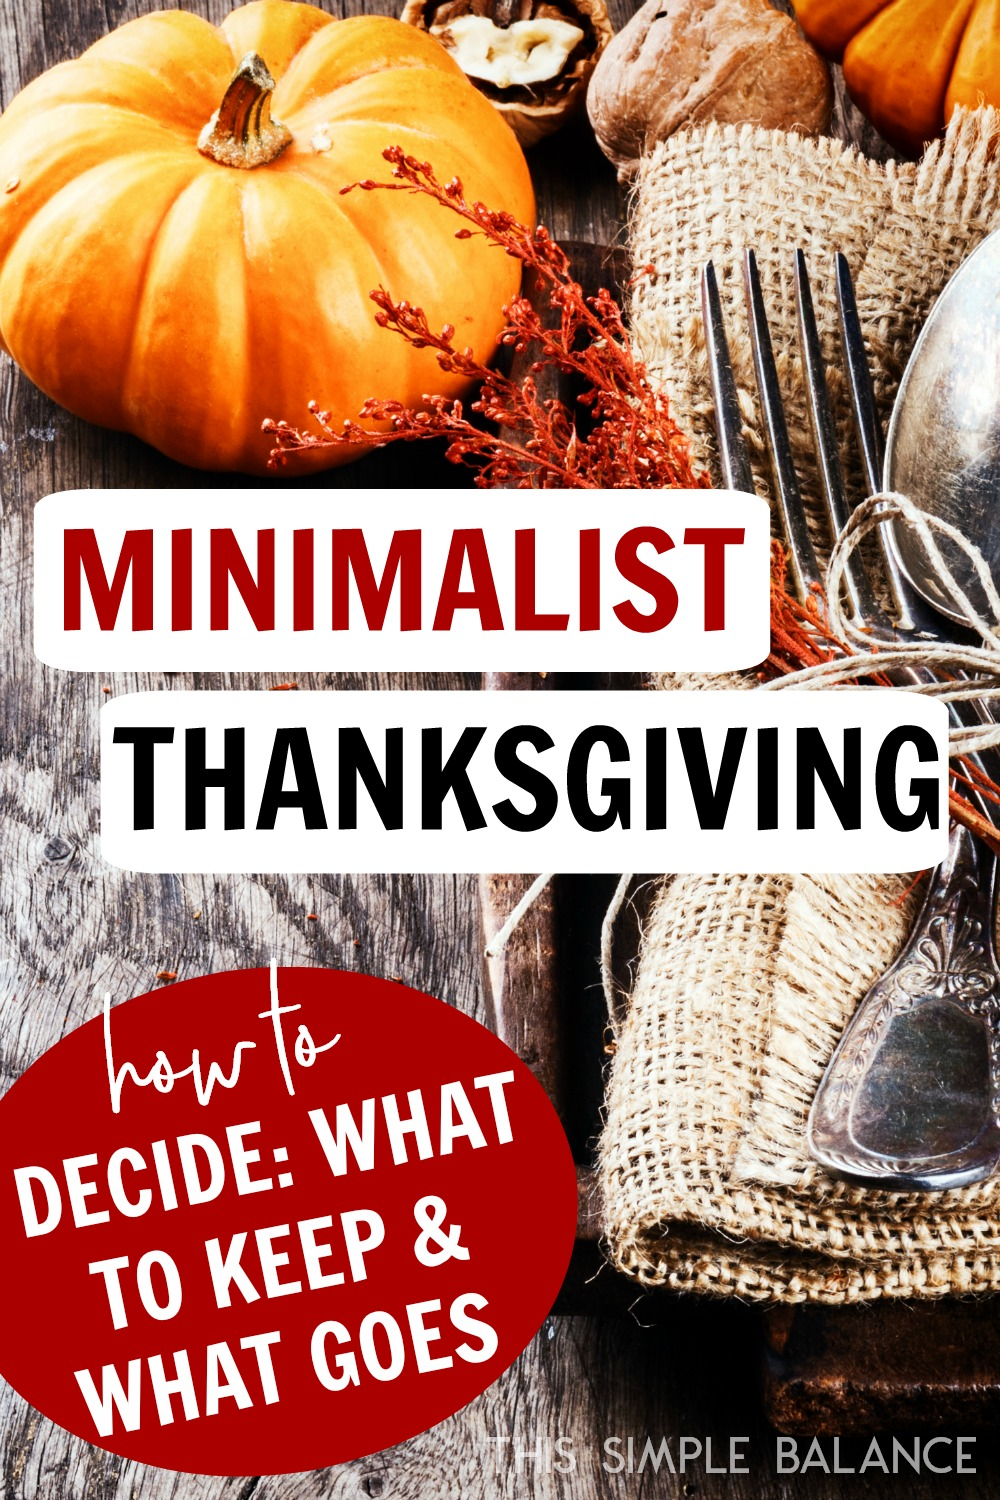 Minimalist Thanksgiving: Decide what to keep and what to cut for a less stressful Thanskgiving.